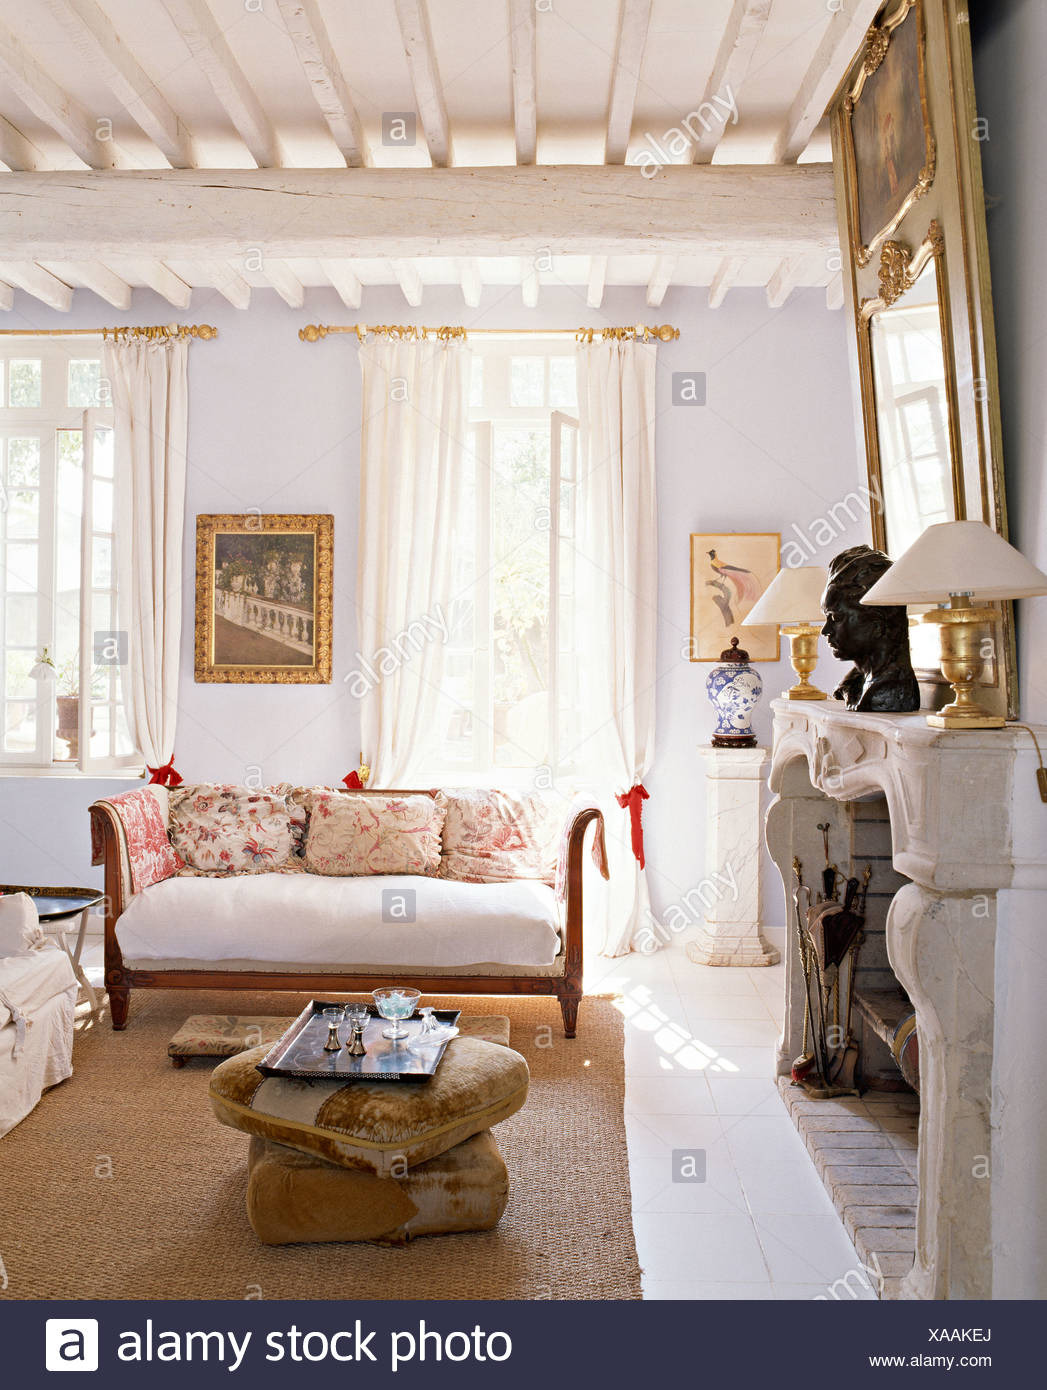 Antique White Living Room Furniture New Floor Cushions Beside Fireplace In Pale Blue French Country